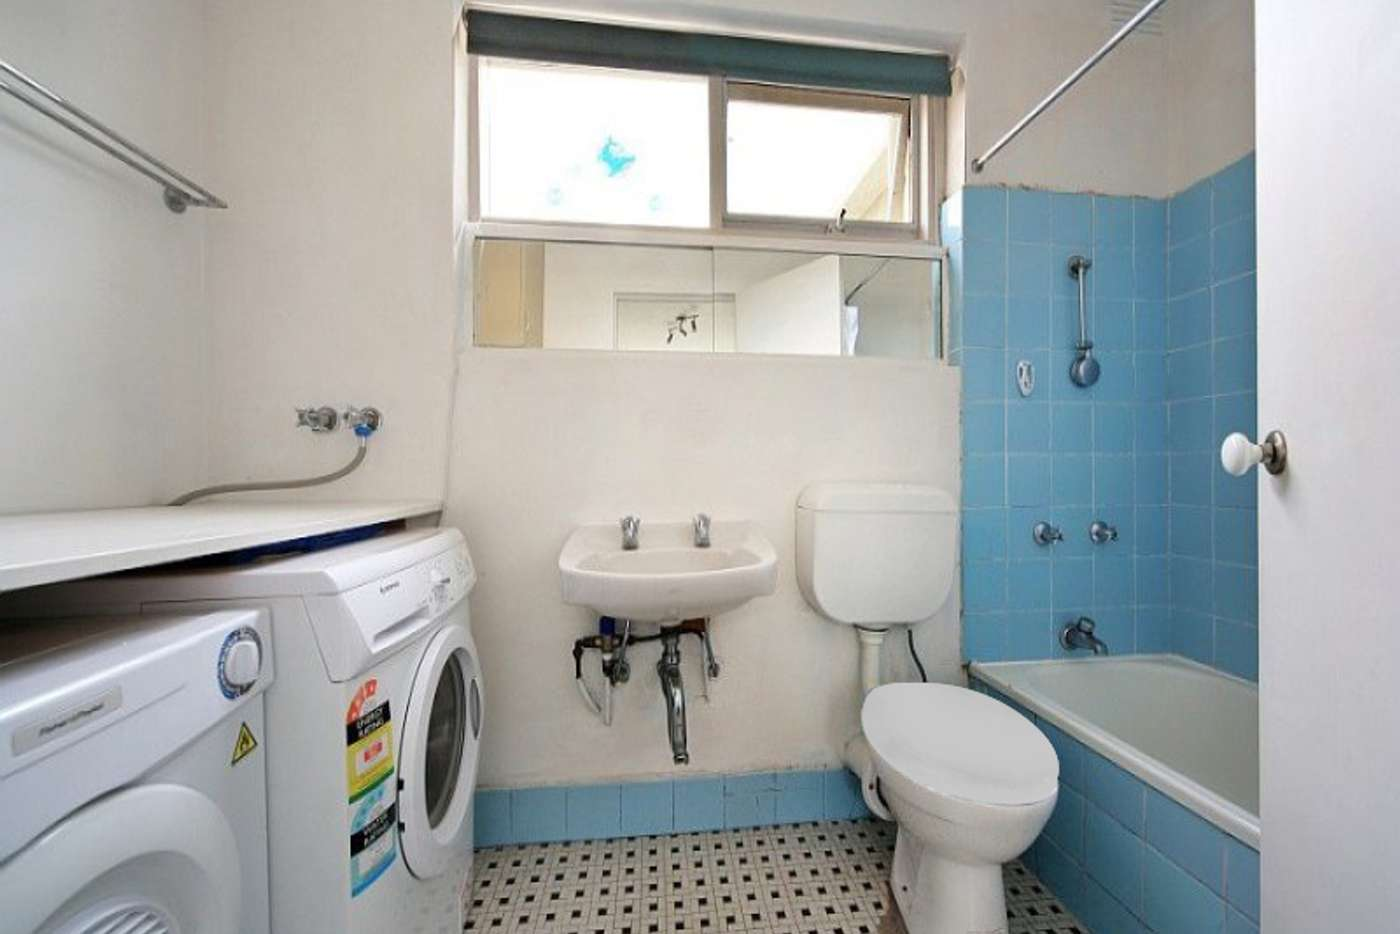 Fifth view of Homely apartment listing, 11/16 Normanby Street, Prahran VIC 3181